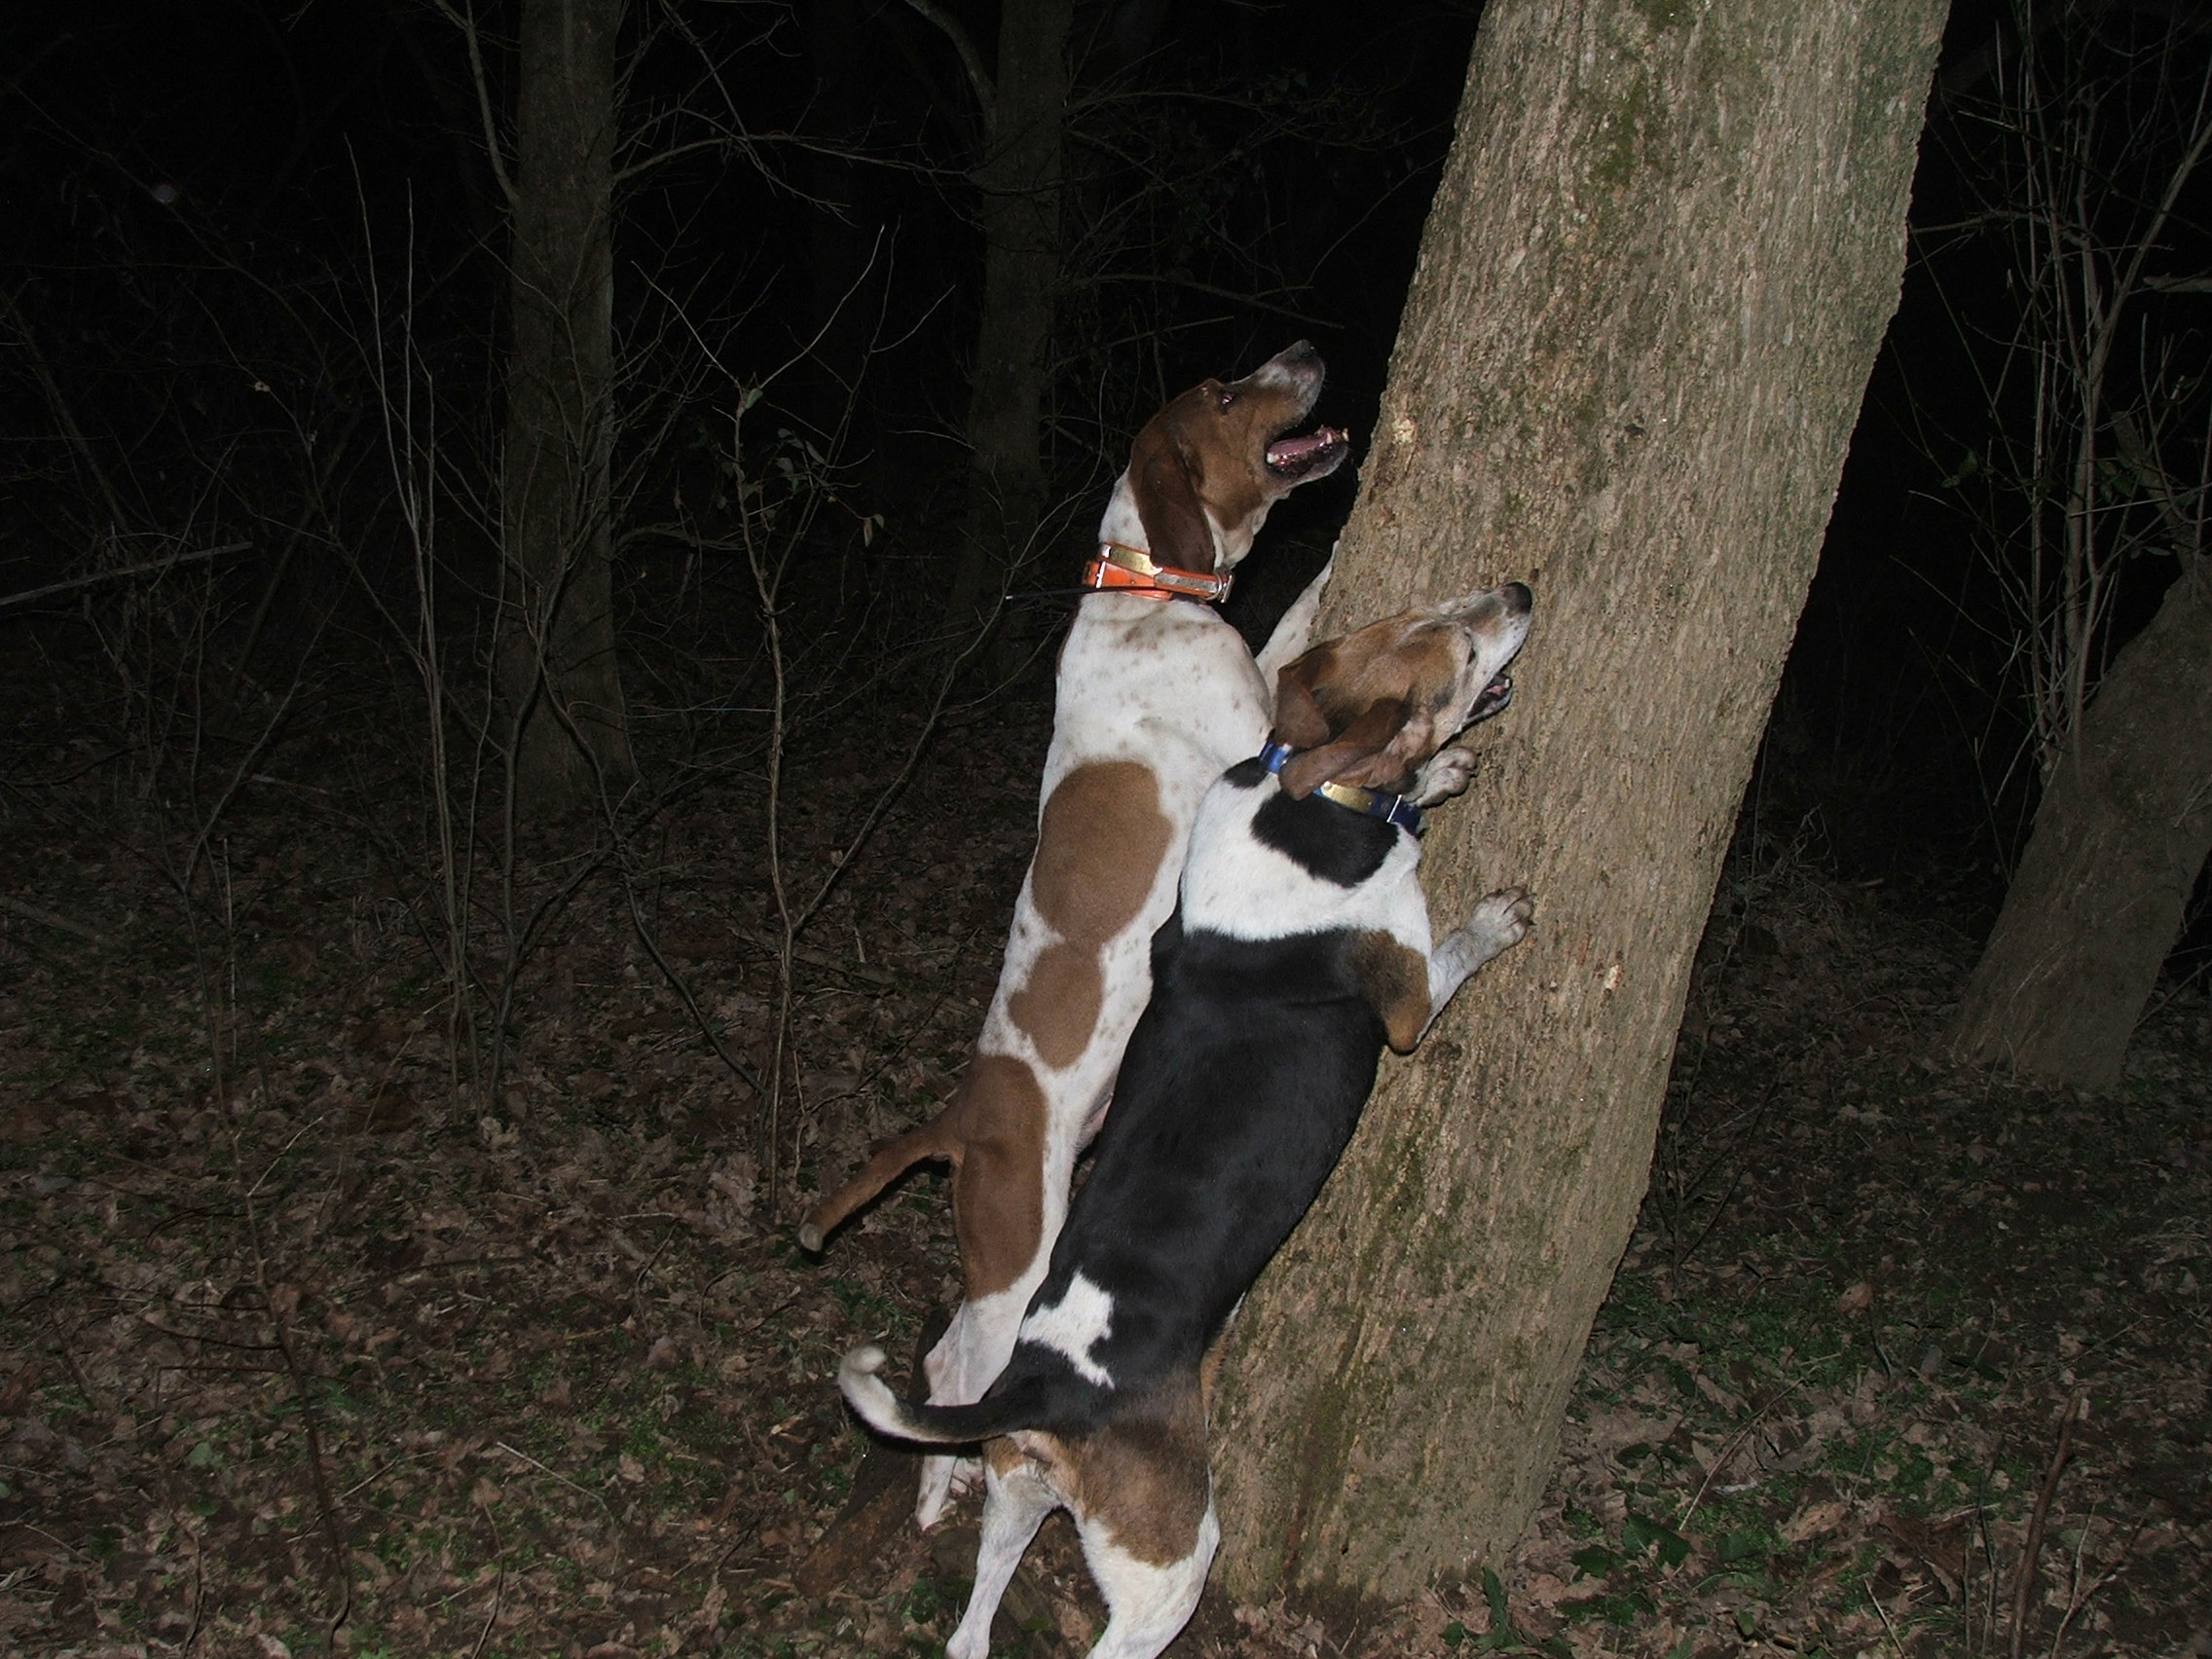 dogs chasing through the - photo #49